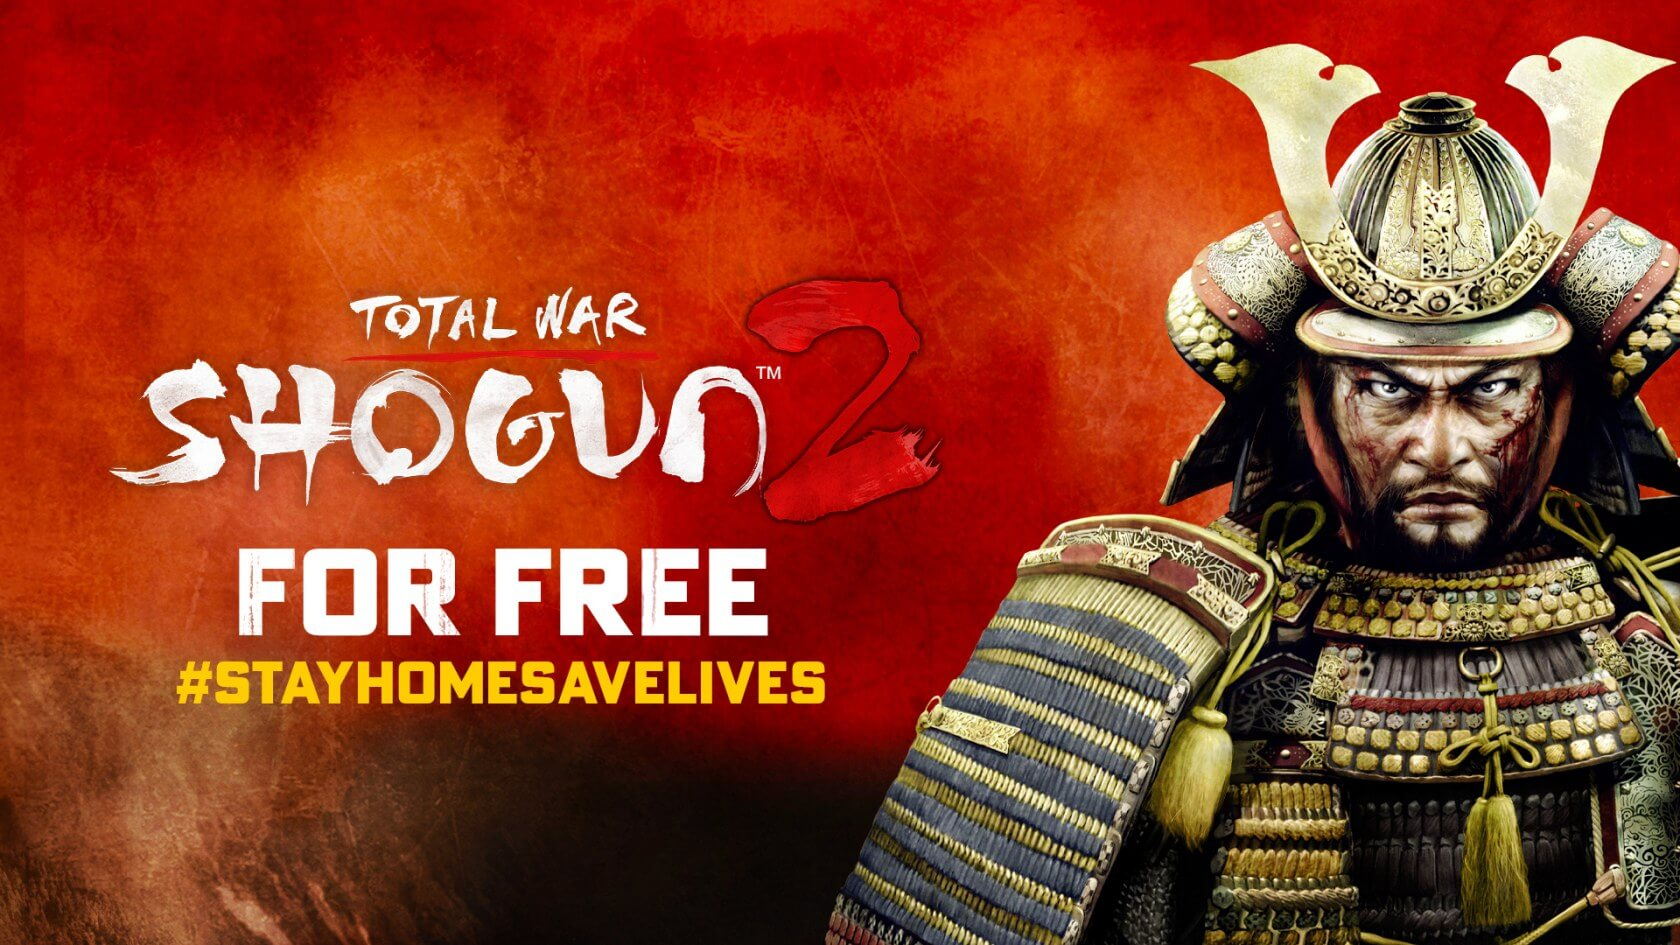 You can grab Total War: Shogun 2 for free until May 1